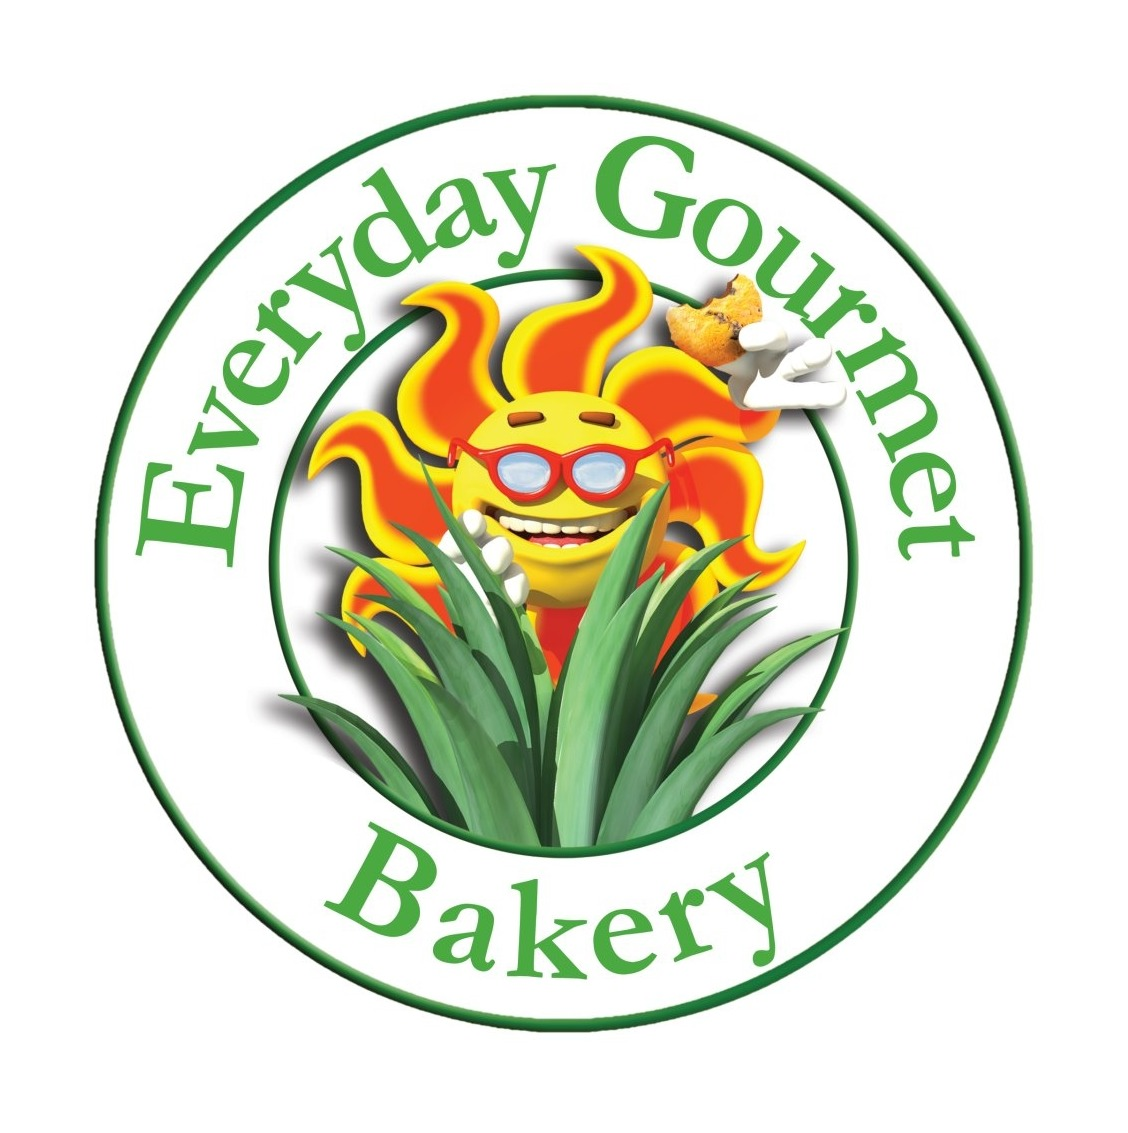 Everyday Gourmet Bakery & Cafe Coupons & Promo codes